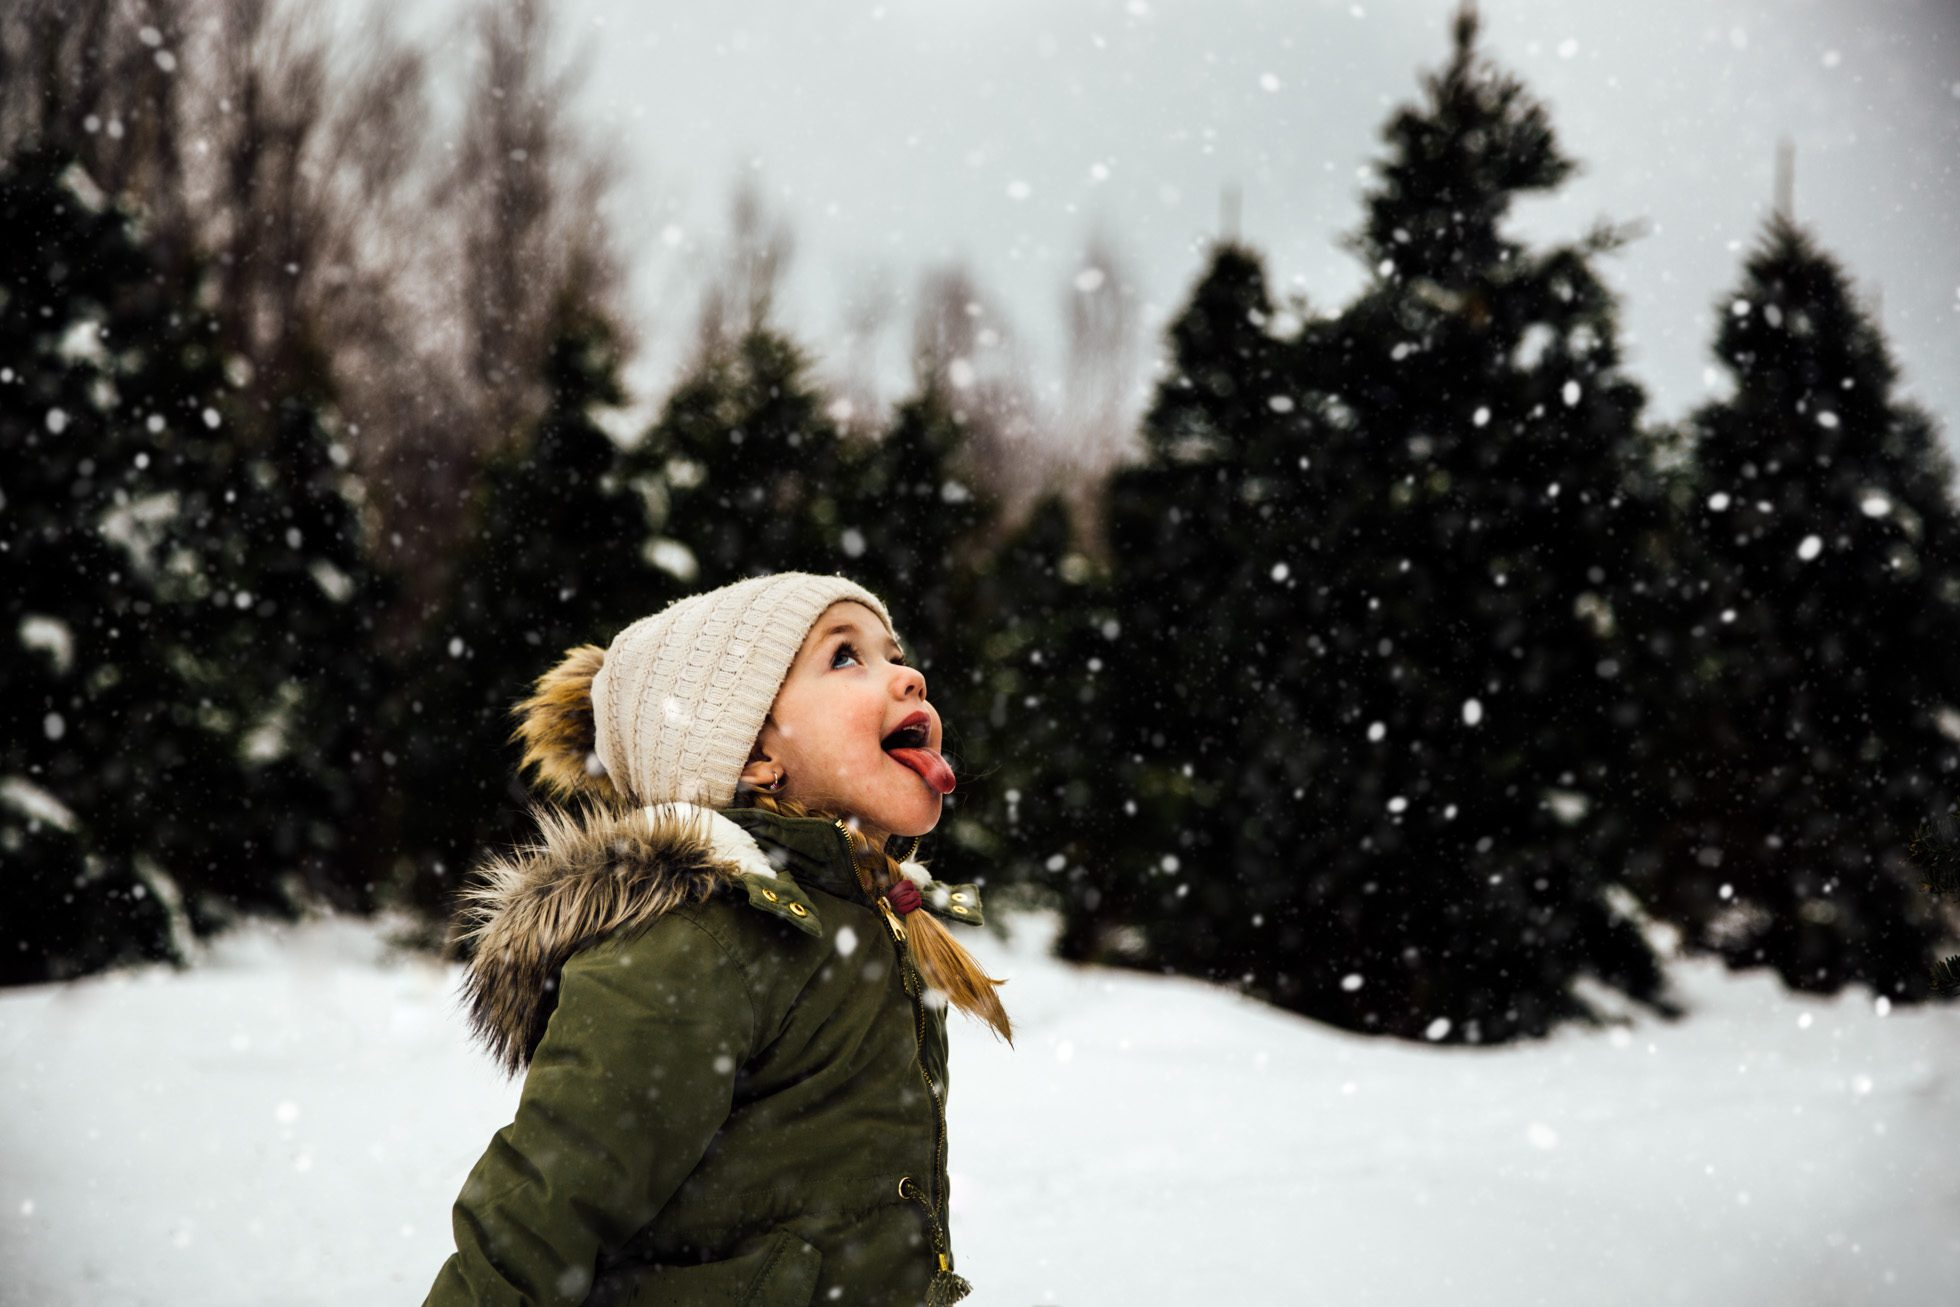 girl-catching-snowflakes-on-her-tongue-Moncton-photographer-Julie-Audoux